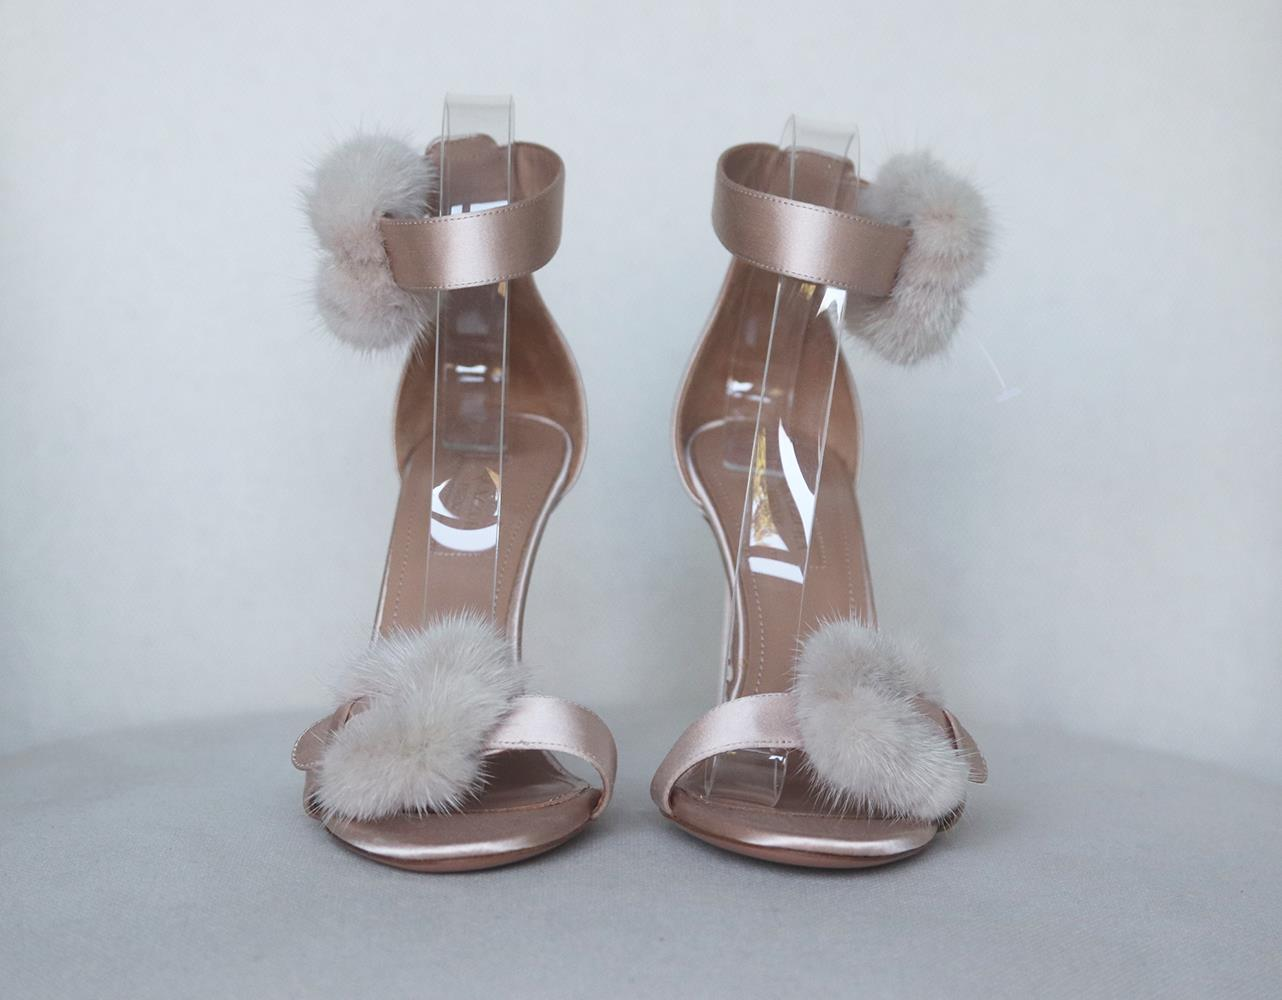 AQUAZZURA SINATRA MINK TRIMMED SATIN SANDALS EU 39.5 UK 6.5 US 9.5